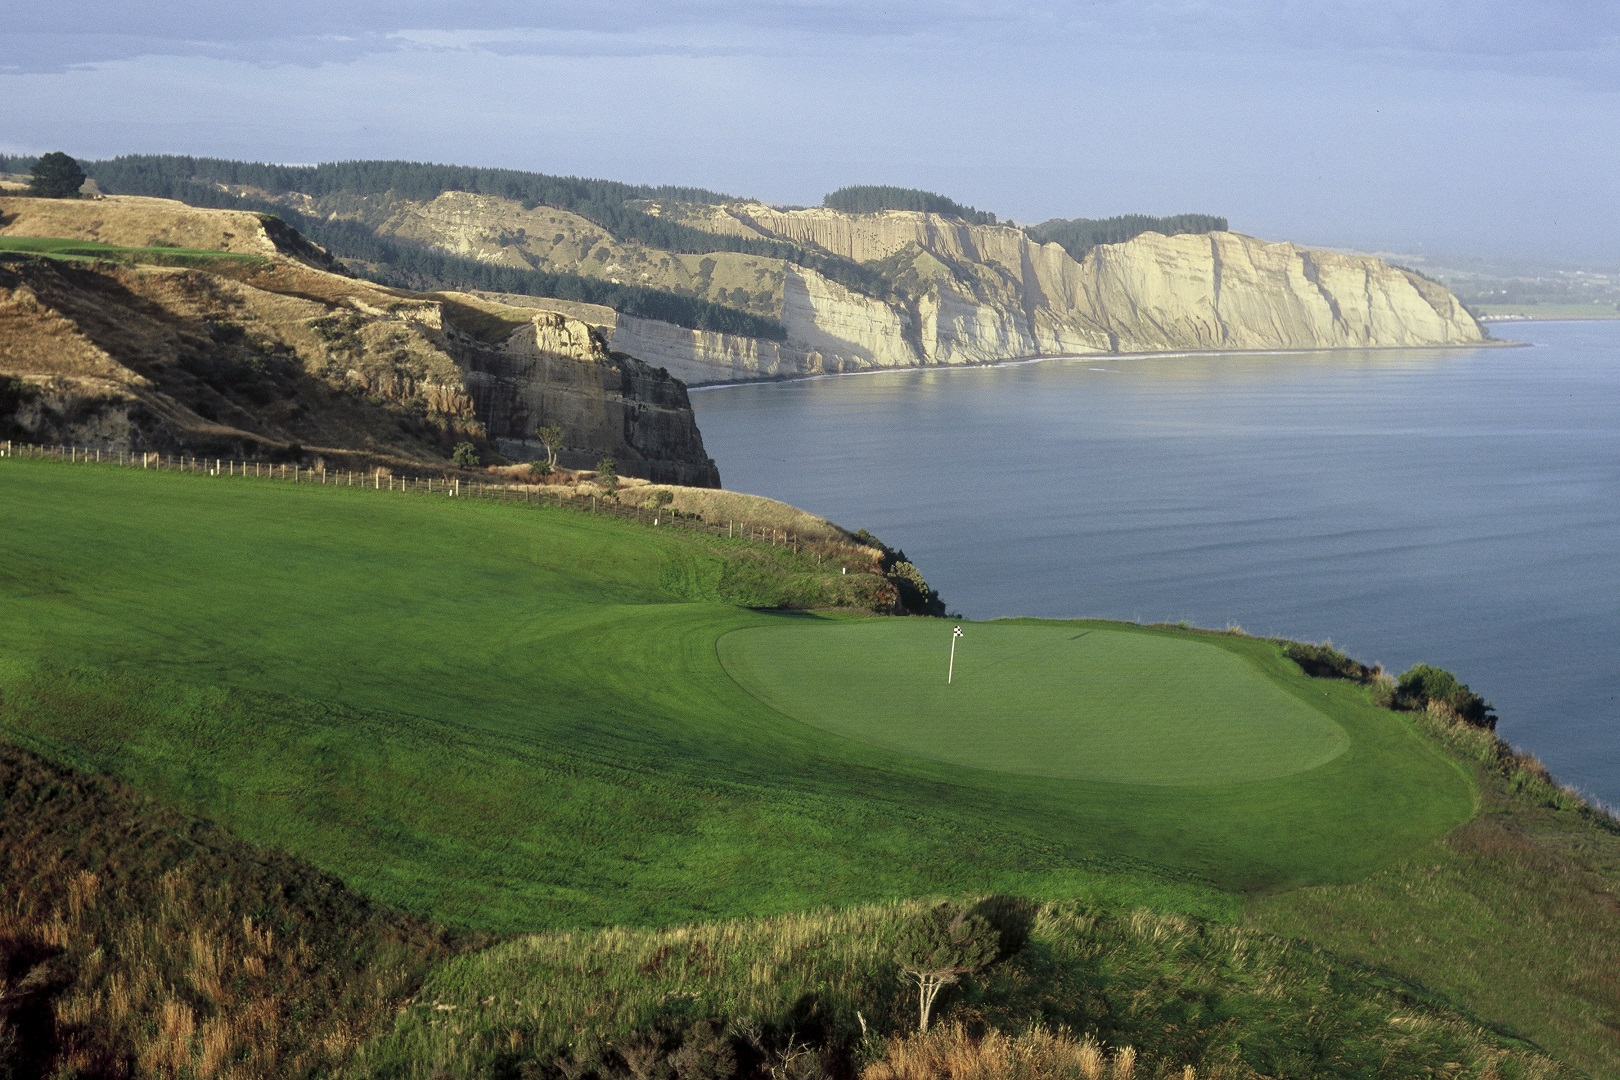 Golf at Cape Kidnappers - pic courtesy Robertson Lodges